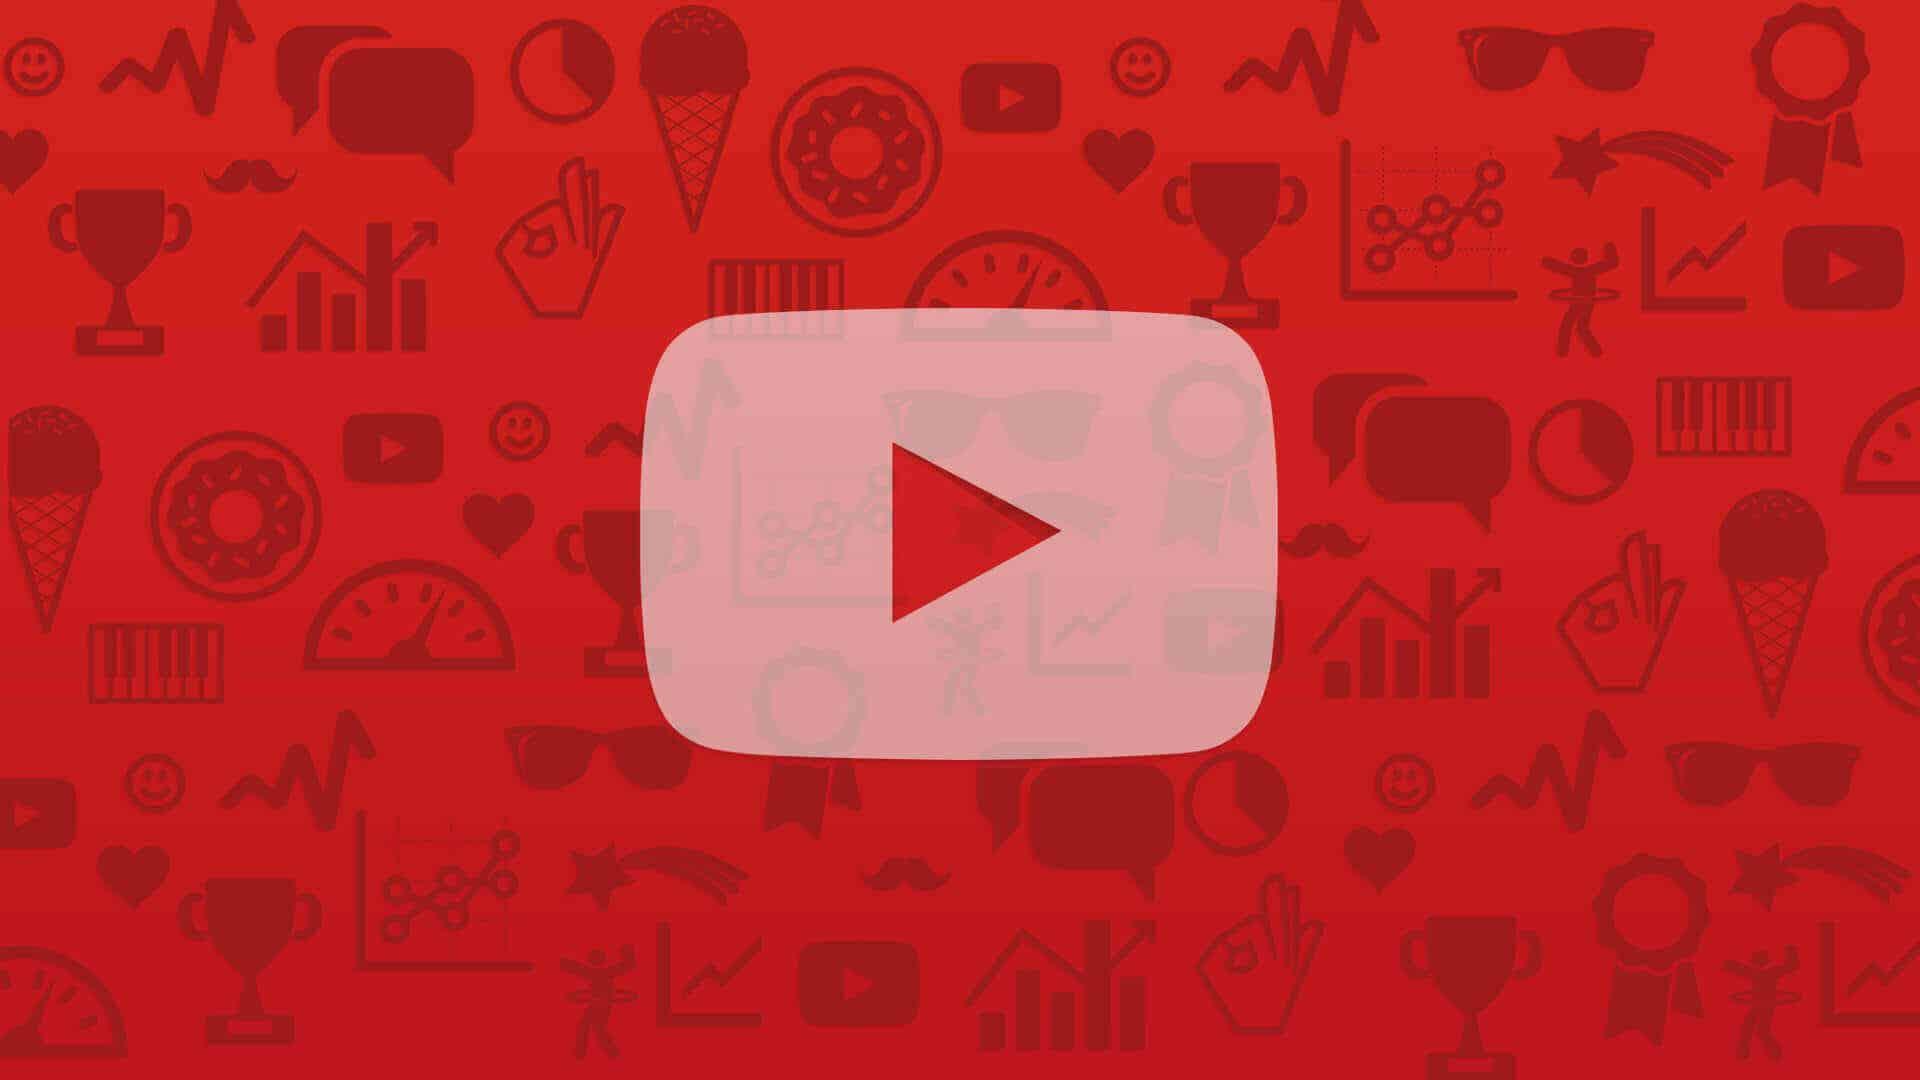 YouTube is testing out layout that hides the comment section by default in its Android app